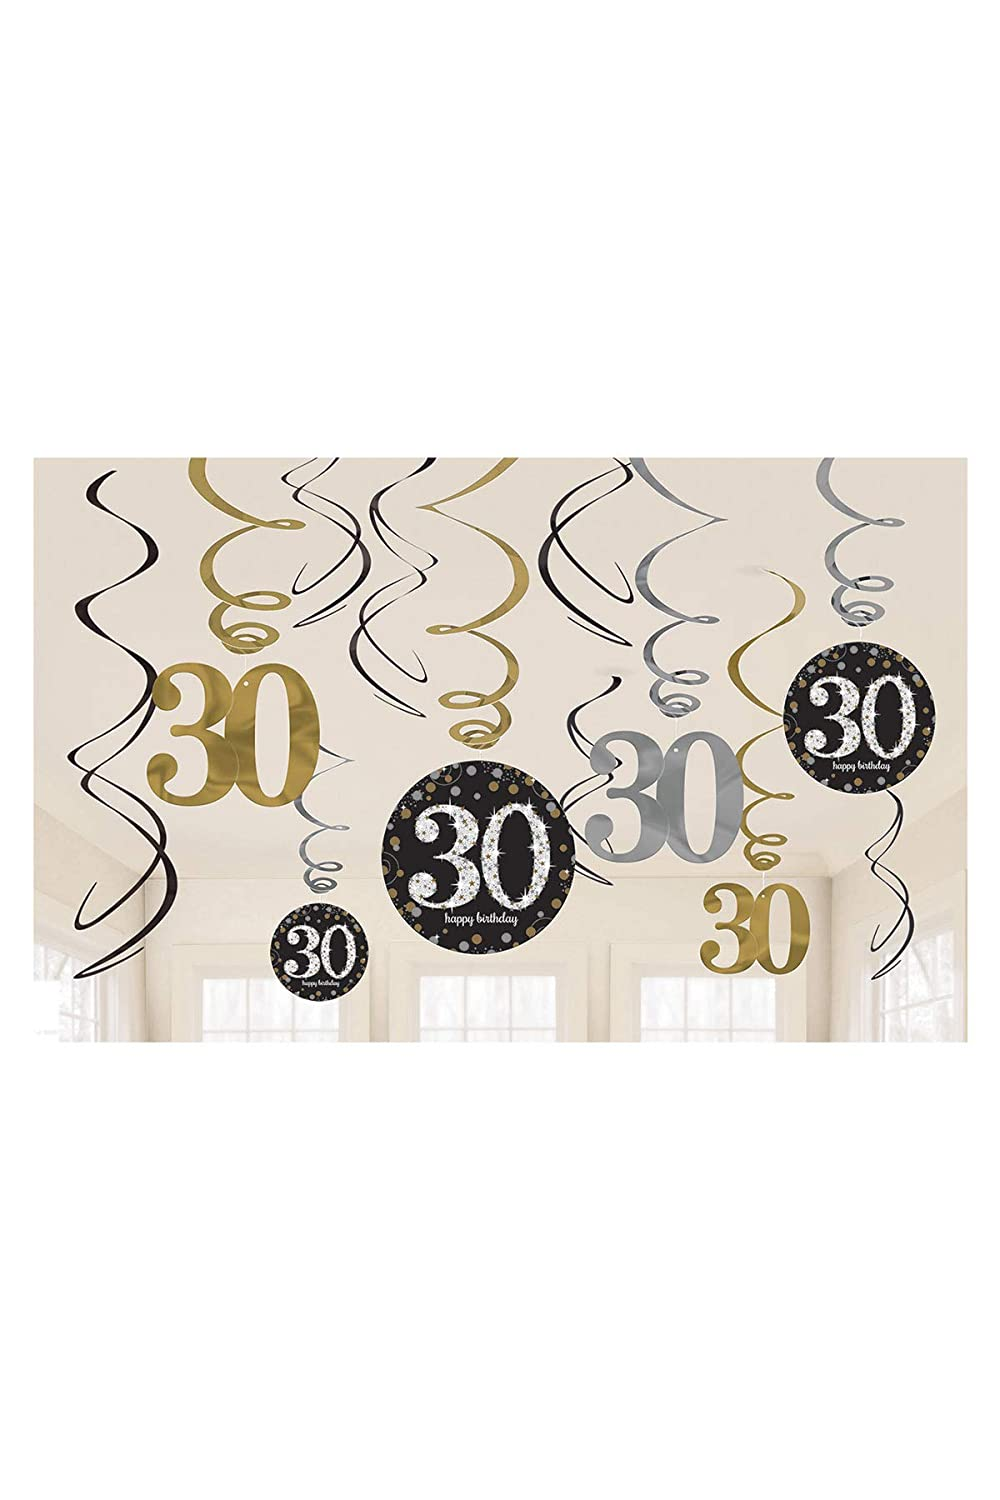 12 SPARKLING CELEBRATION 40th Birthday SWIRL DECORATIONS ~ Party Supplies Foil